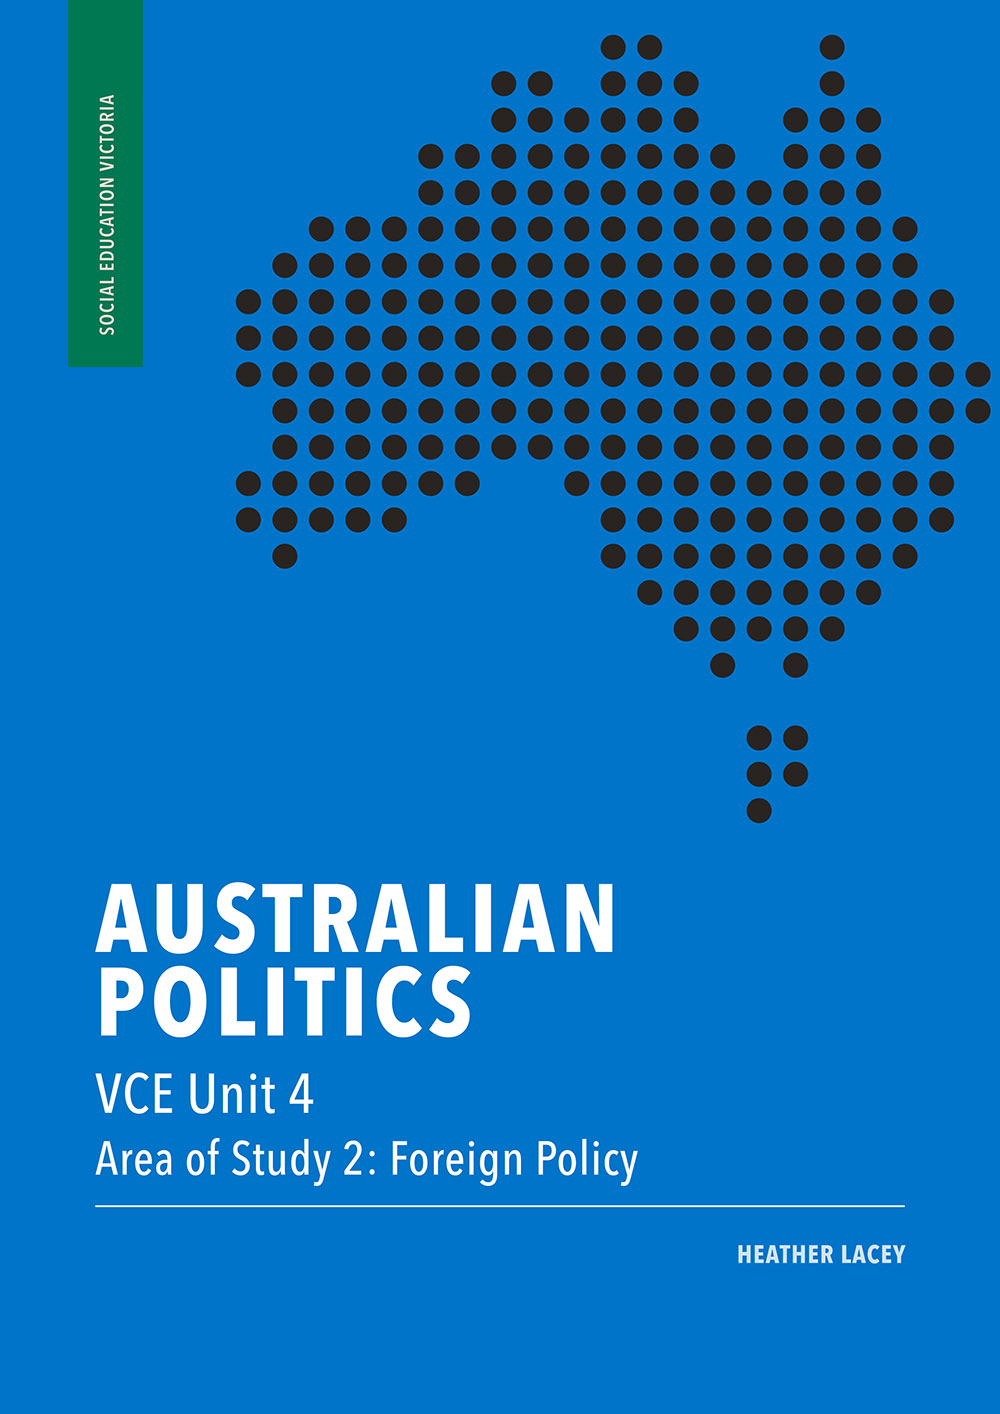 Australian Politics VCE Unit 4, Area of Study 2